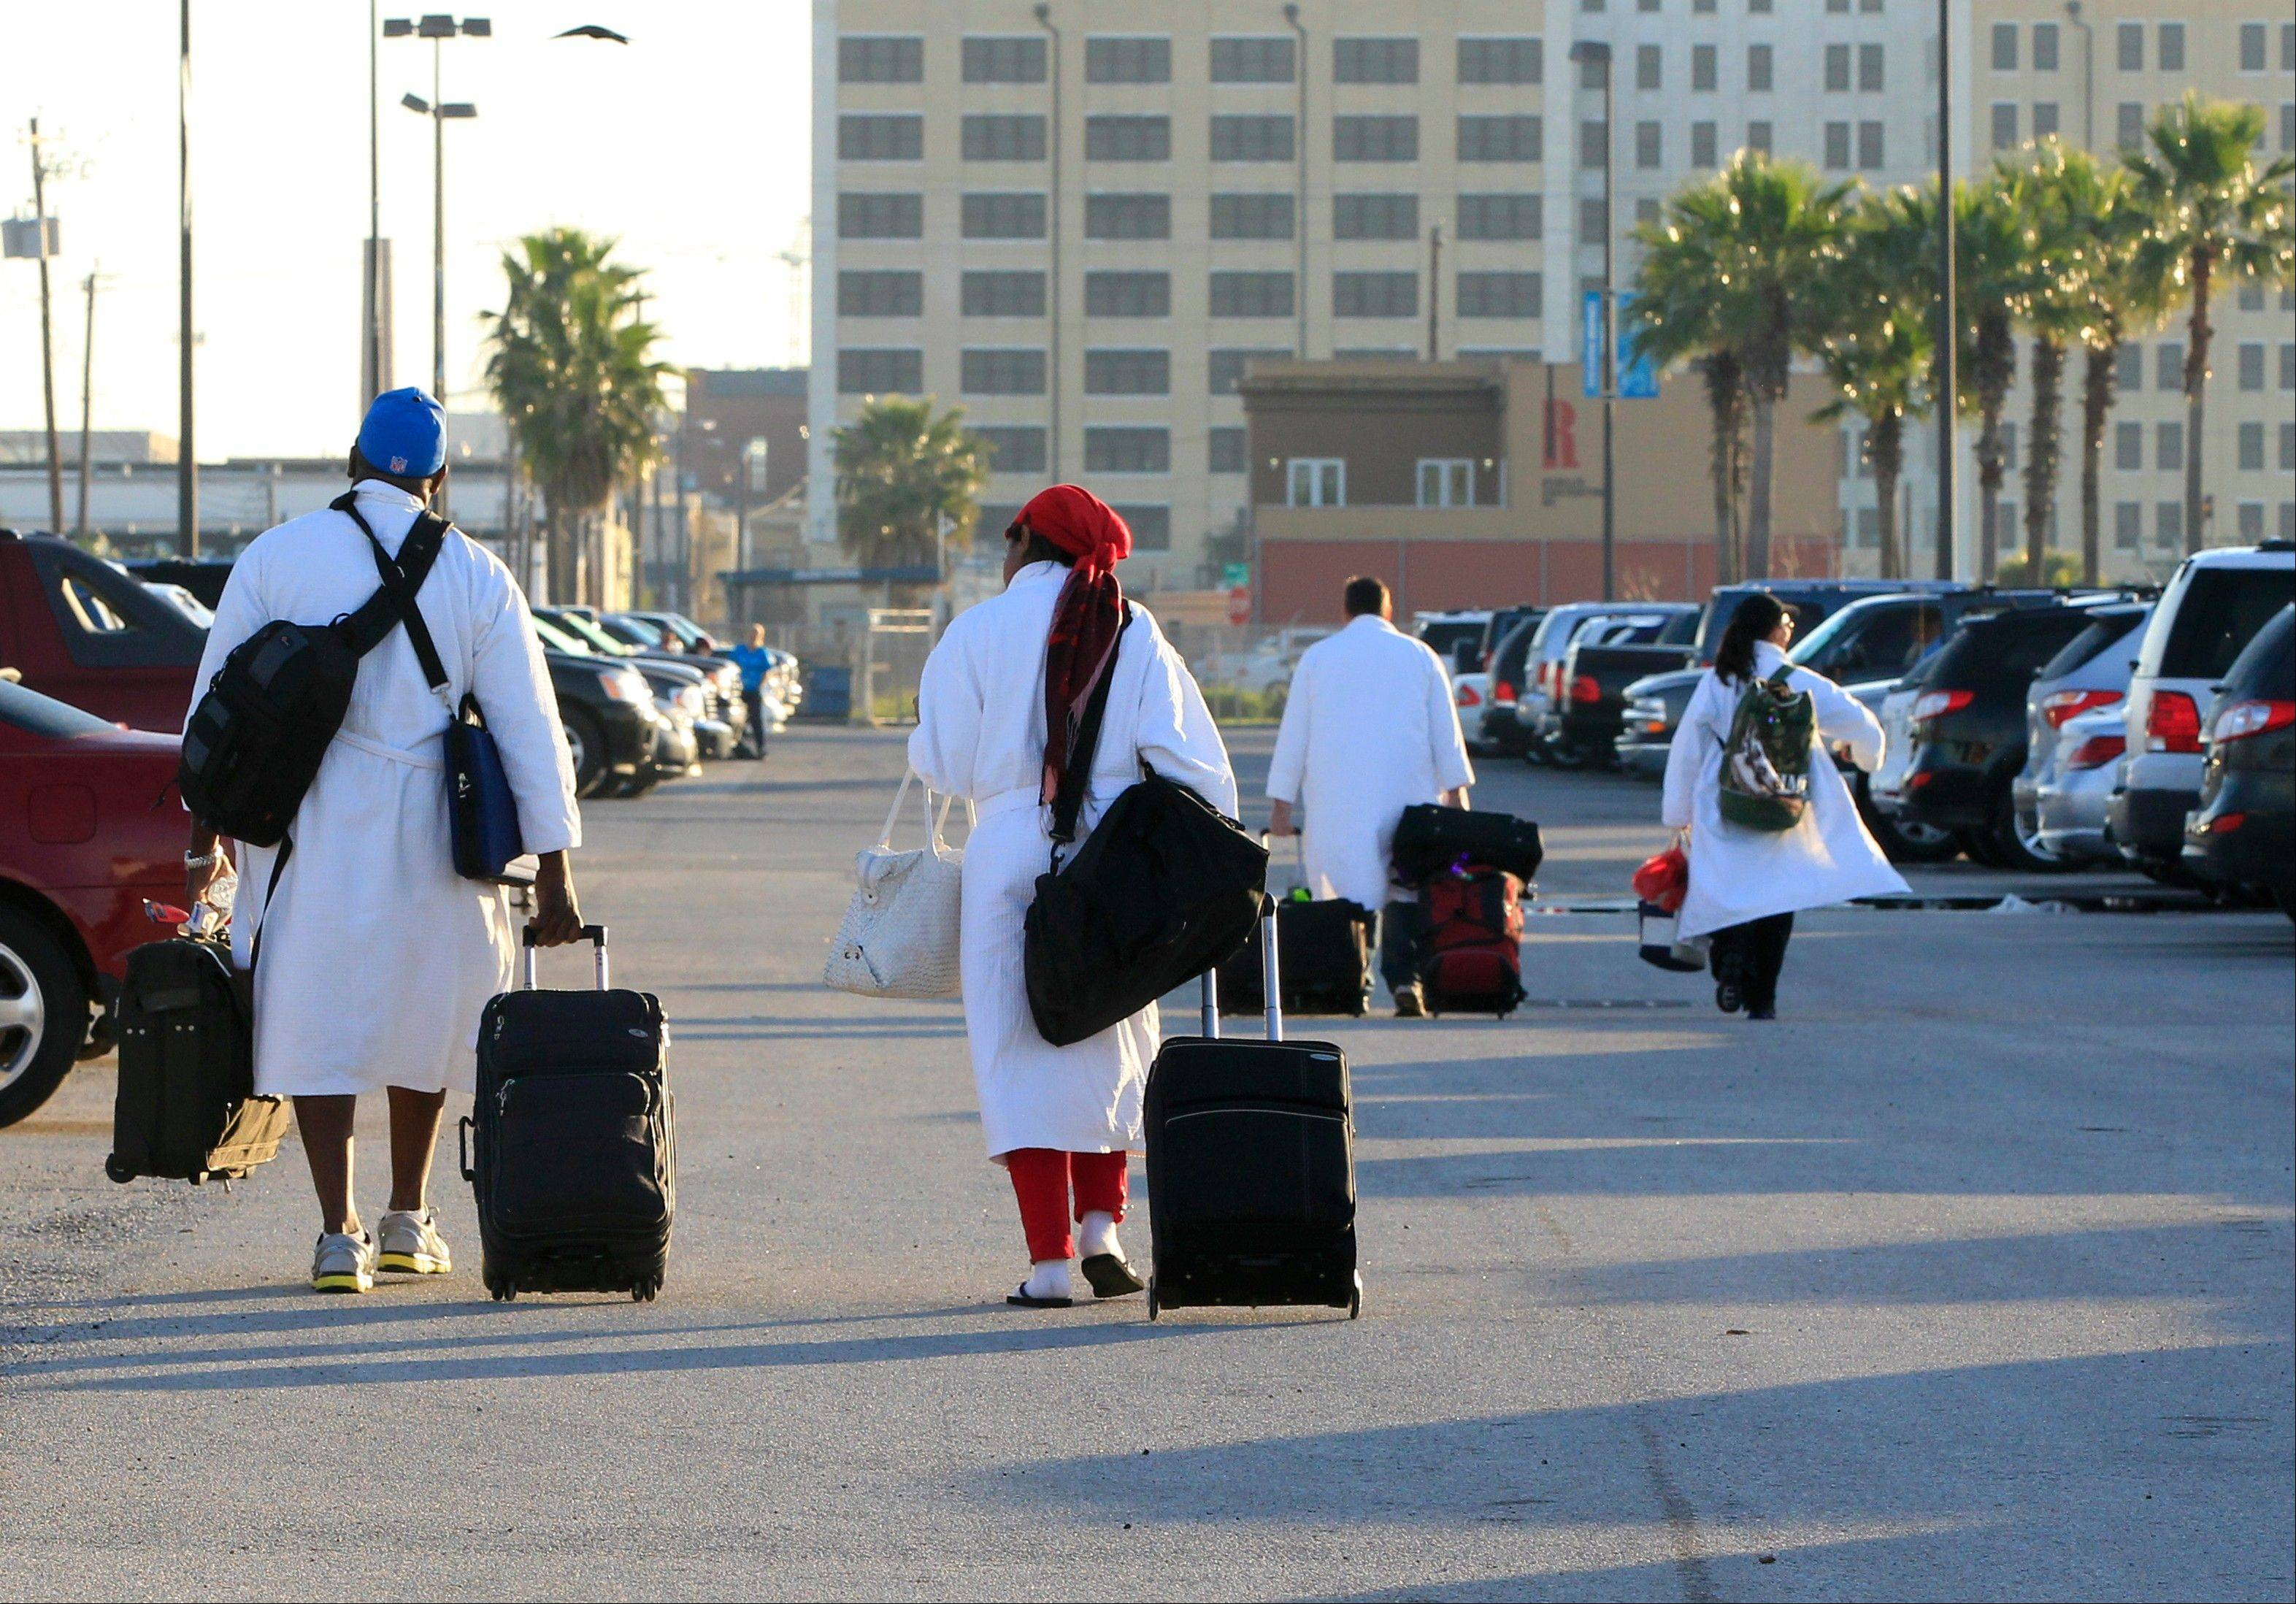 Passengers from the Carnival ship Triumph, all wearing their Carnival bathrobes, head to their cars Friday after arriving in Galveston, Texas from Mobile, Ala.